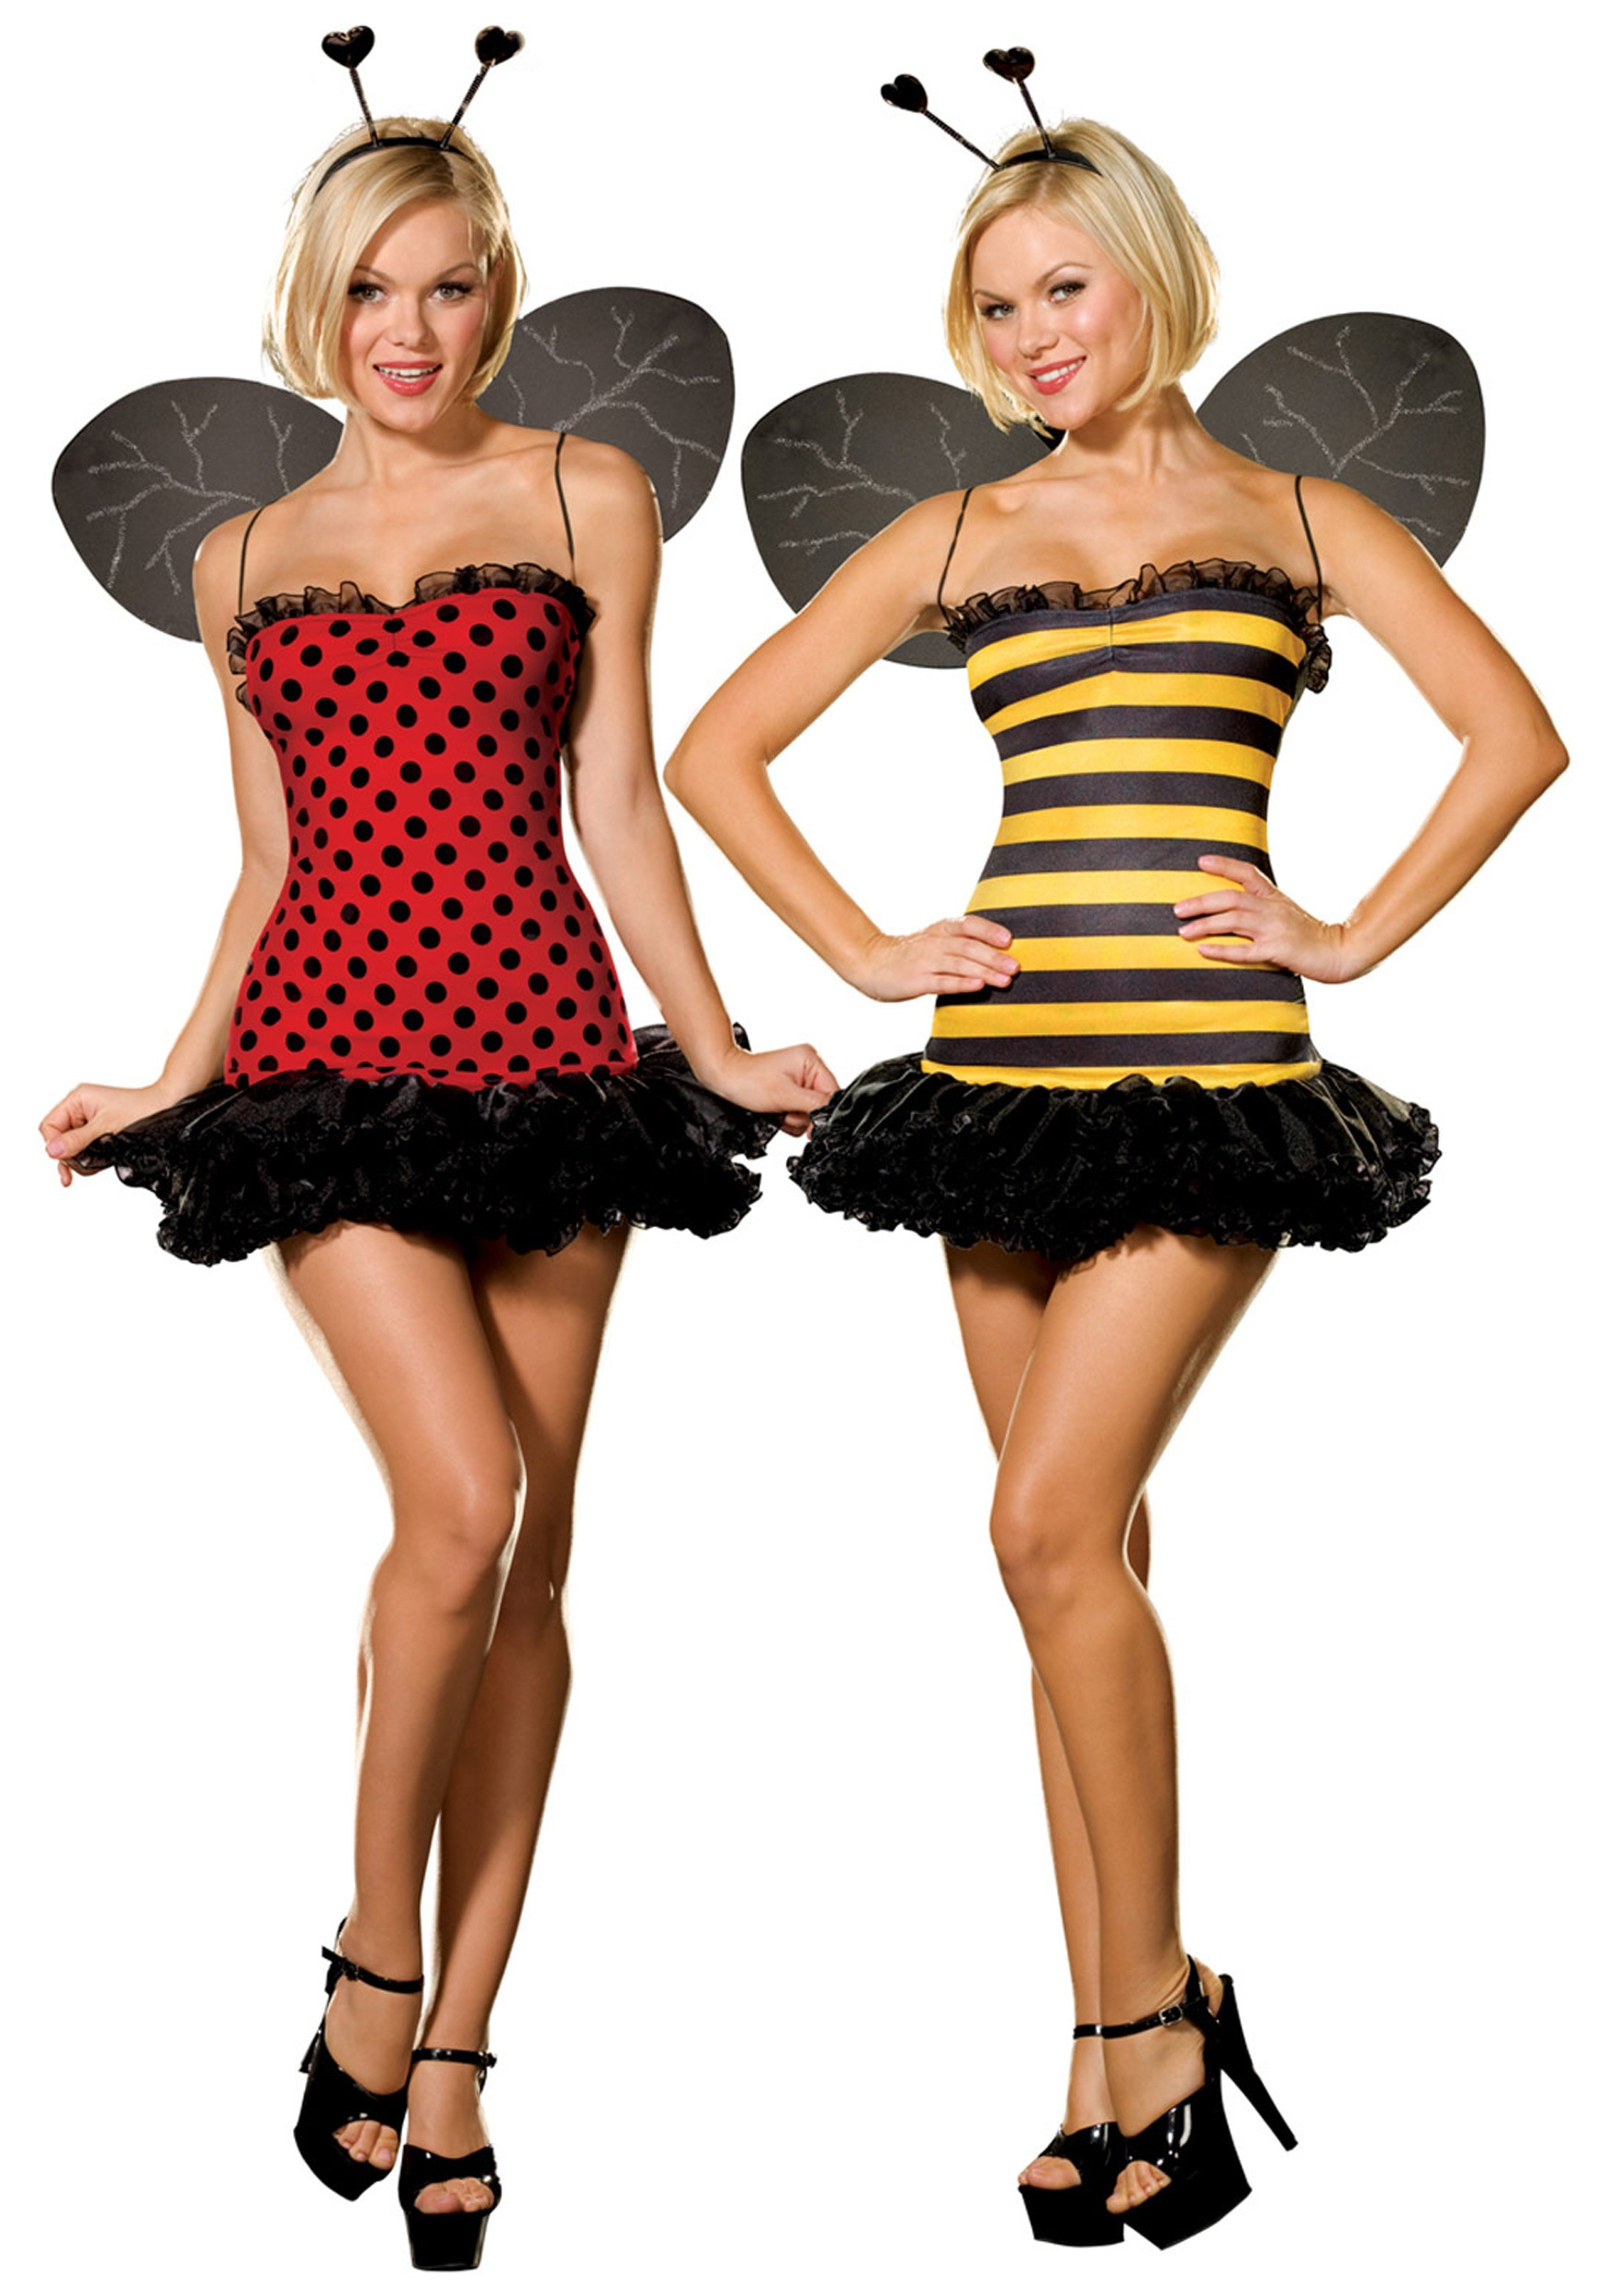 Reversible Ladybug / Bumble Bee Costume  sc 1 st  Halloween Costumes & Reversible Ladybug / Bumble Bee Costume - Halloween Costumes